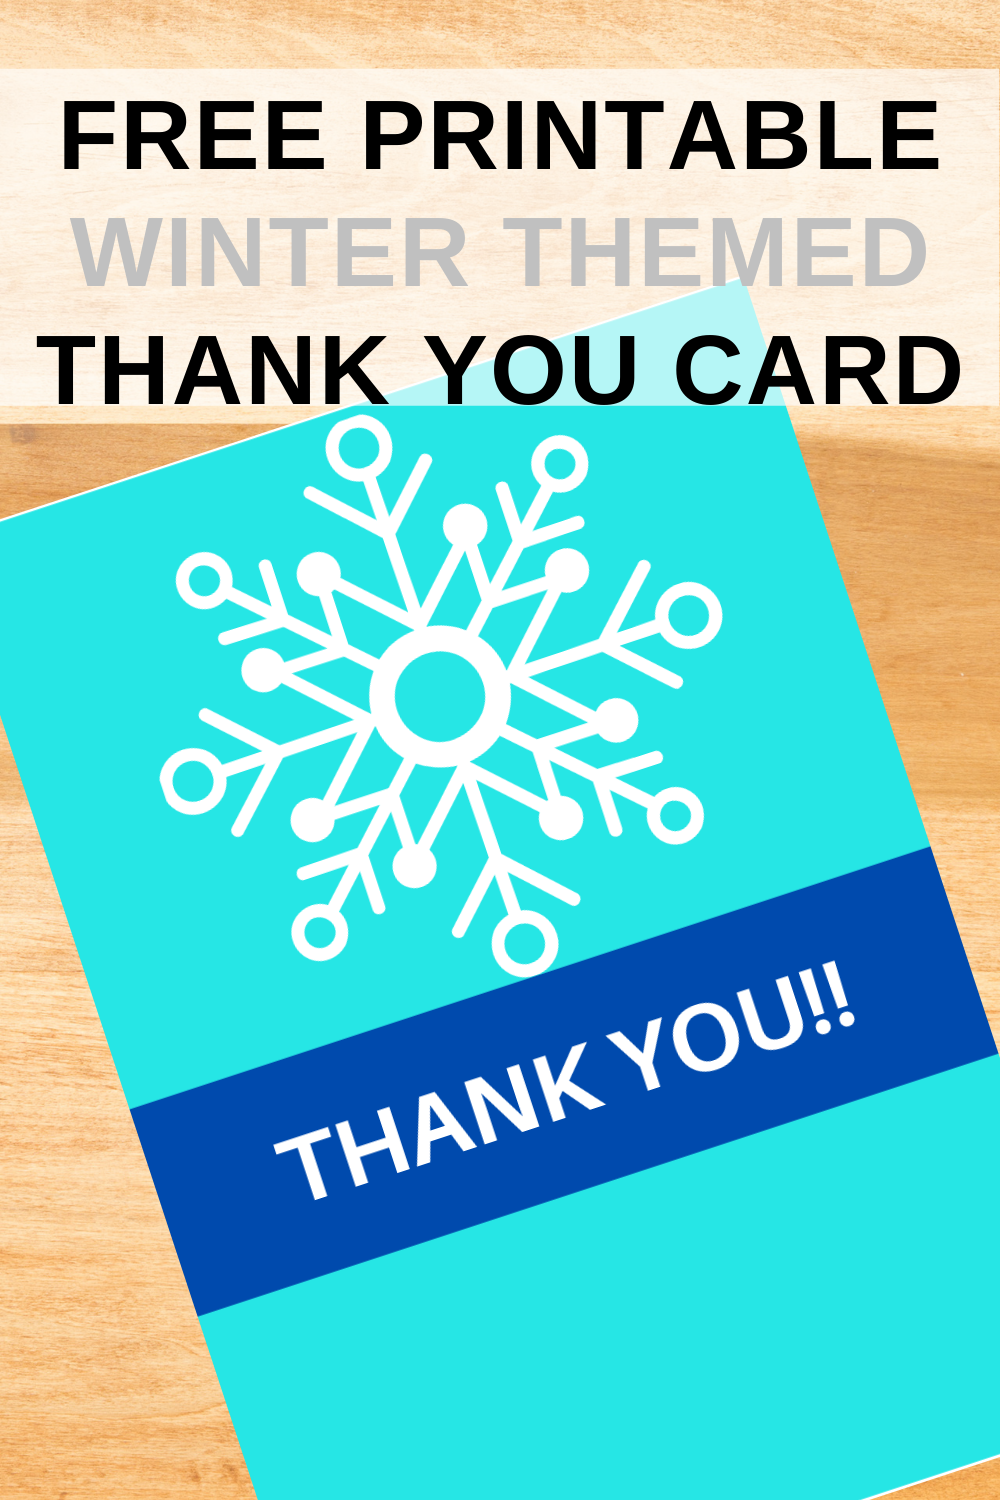 free printable winter themed thank you note